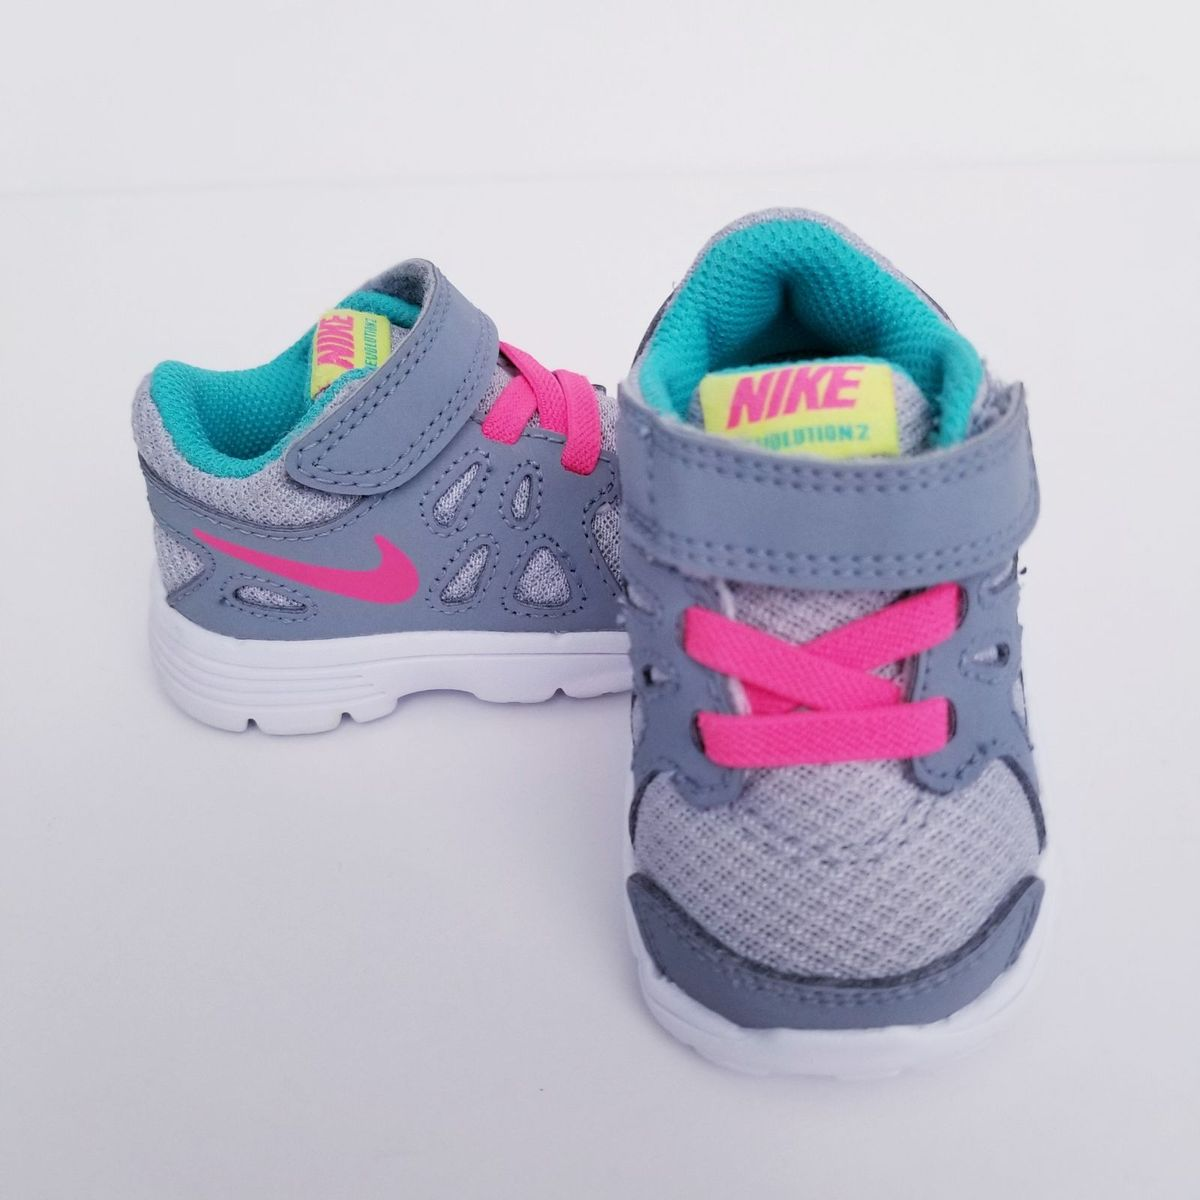 Nike Revolution ll Toddler Size 2c In Very Good Condition! #nike #shoes #athletic ☺☺☺ If you're not happy with your order, LET ME KNOW BEFORE YOU RATE and ill approve a return request! This will give you a refund once the item is returned. MUST SUBMIT REQUEST TO THEM WITHIN 2 DAYS OF RECEIVING ITEM! ☺☺☺ ALL of the pictures are mine, what you see is what you get.